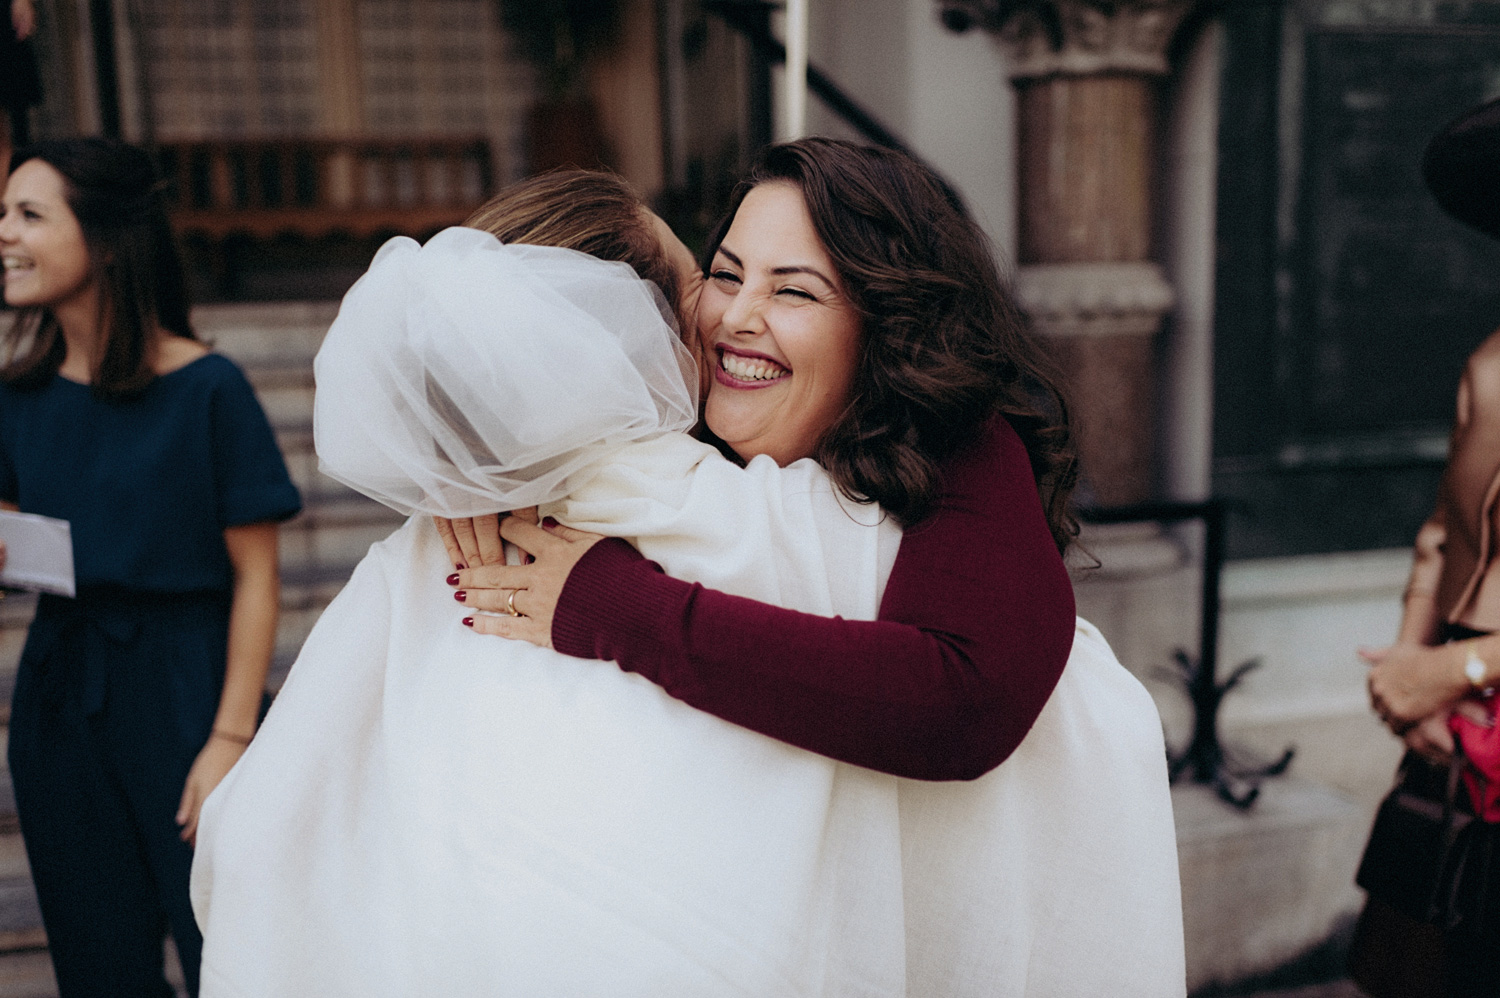 Best friend of bride hugging with smile